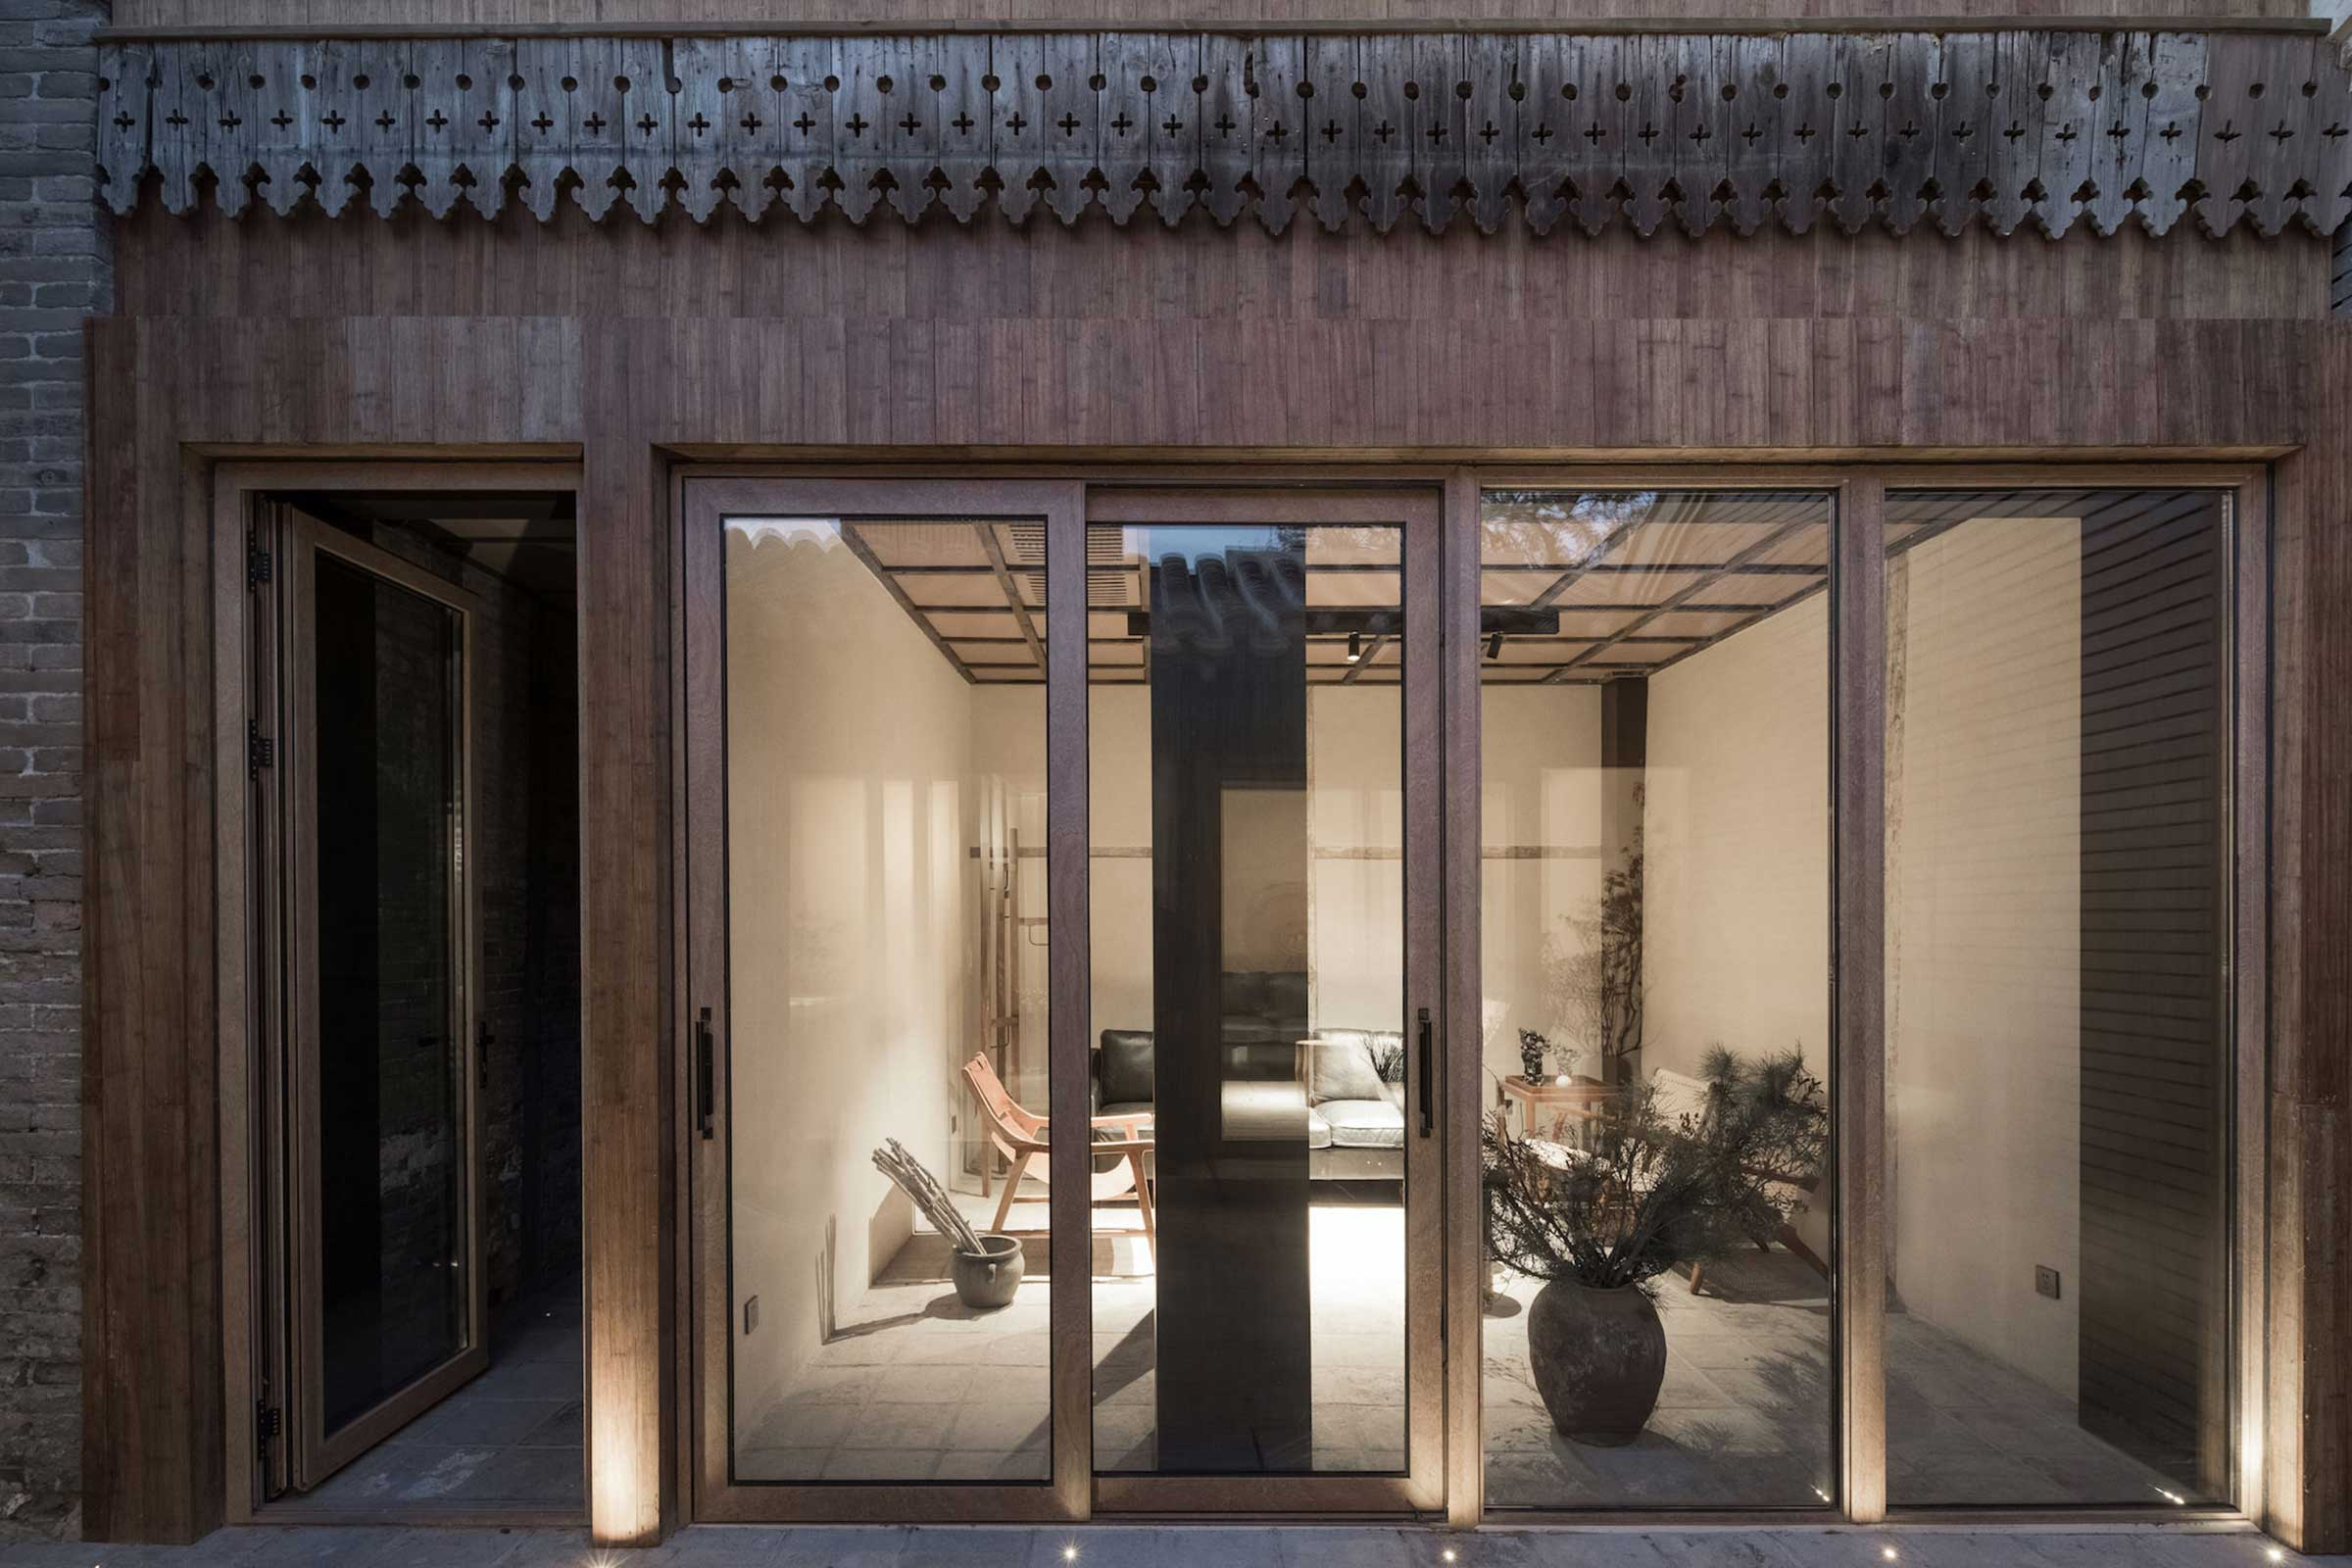 quad-house-ARCHISTRY-nolan-chao-24-private-room-on-frist-floor.jpg